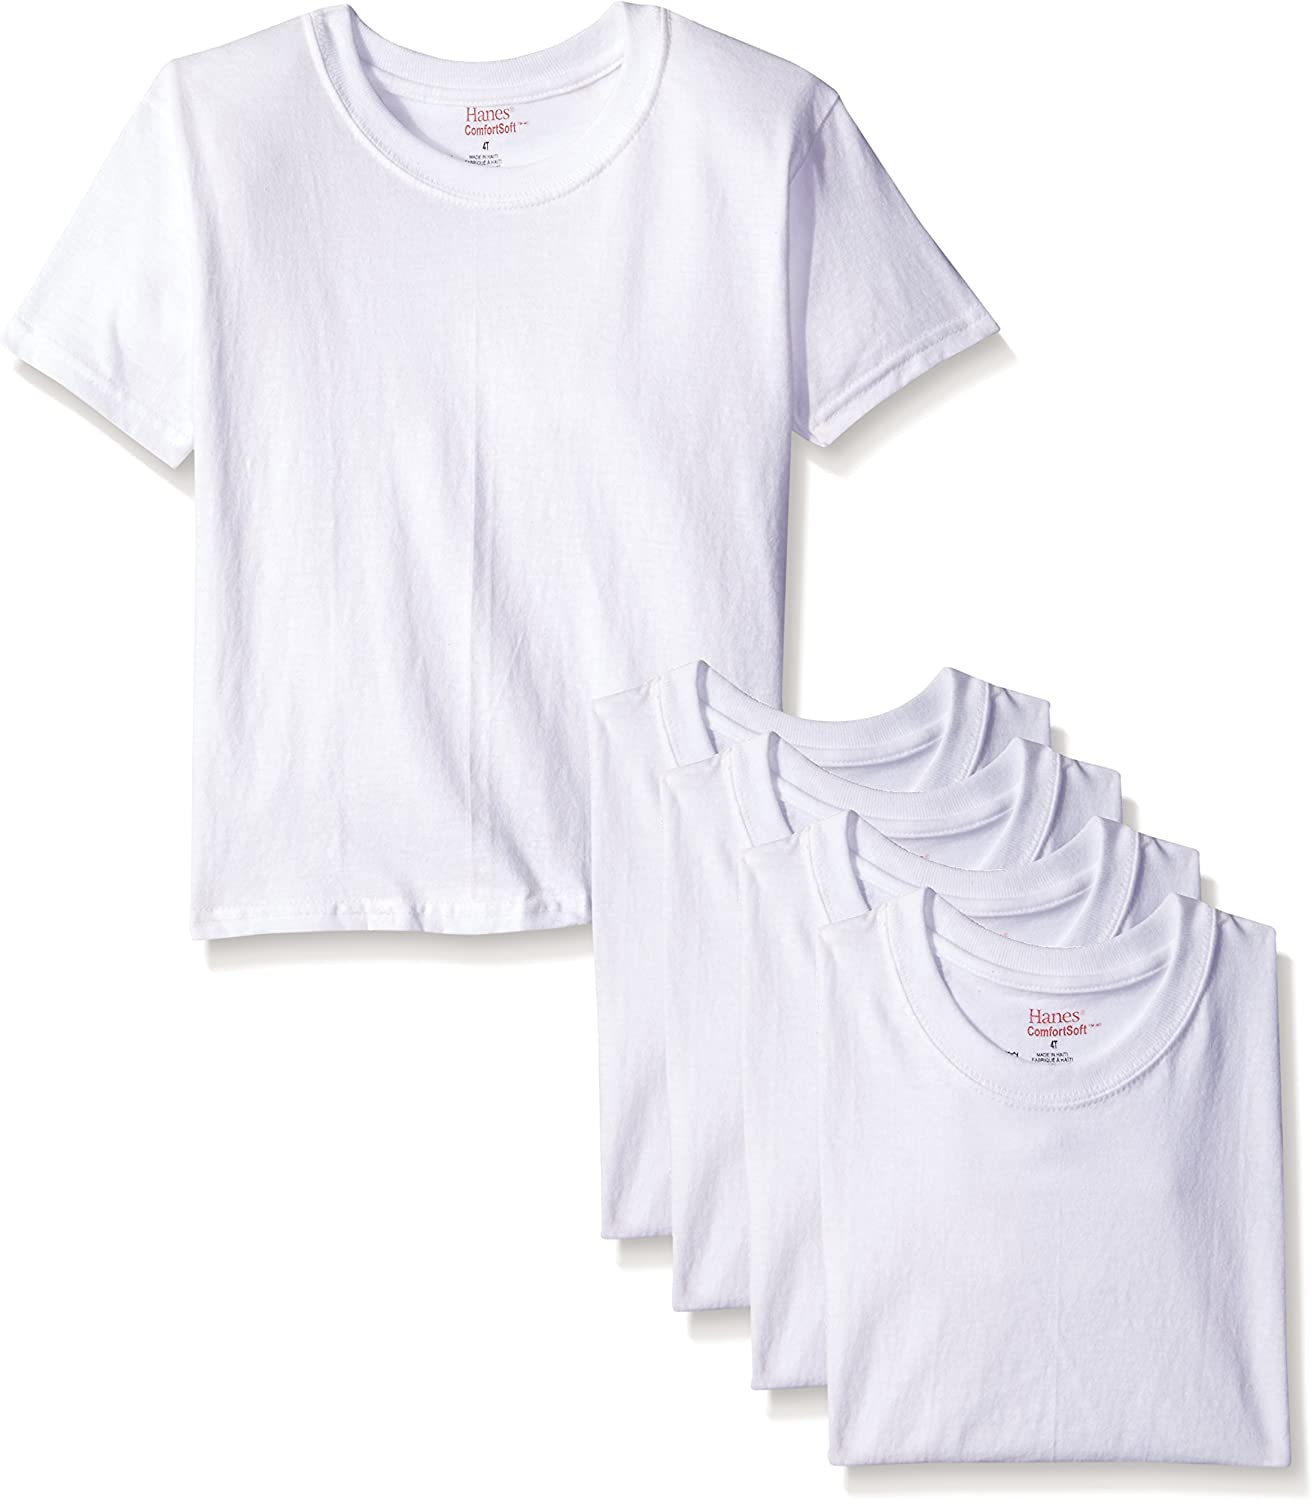 Fruit of the Loom Boys and Toddler Boys Crew Tee Pack of 3